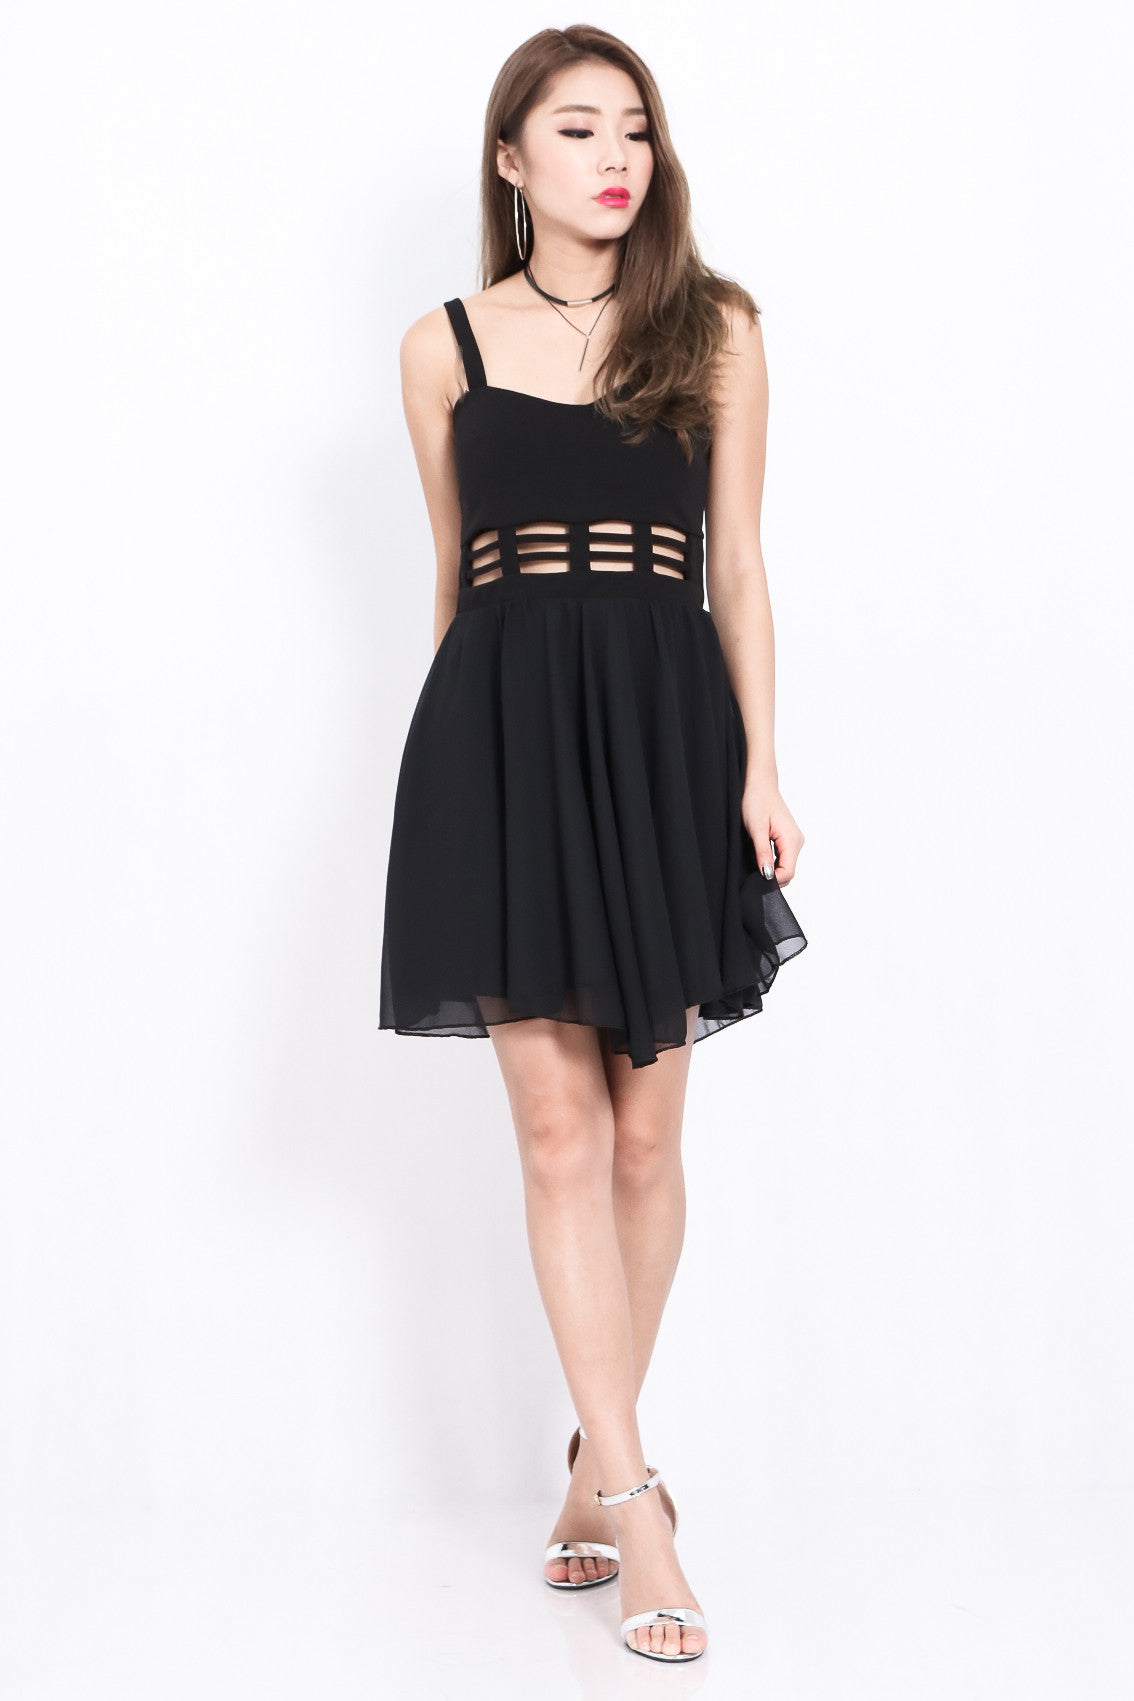 METADOR DRESS IN BLACK - TOPAZETTE